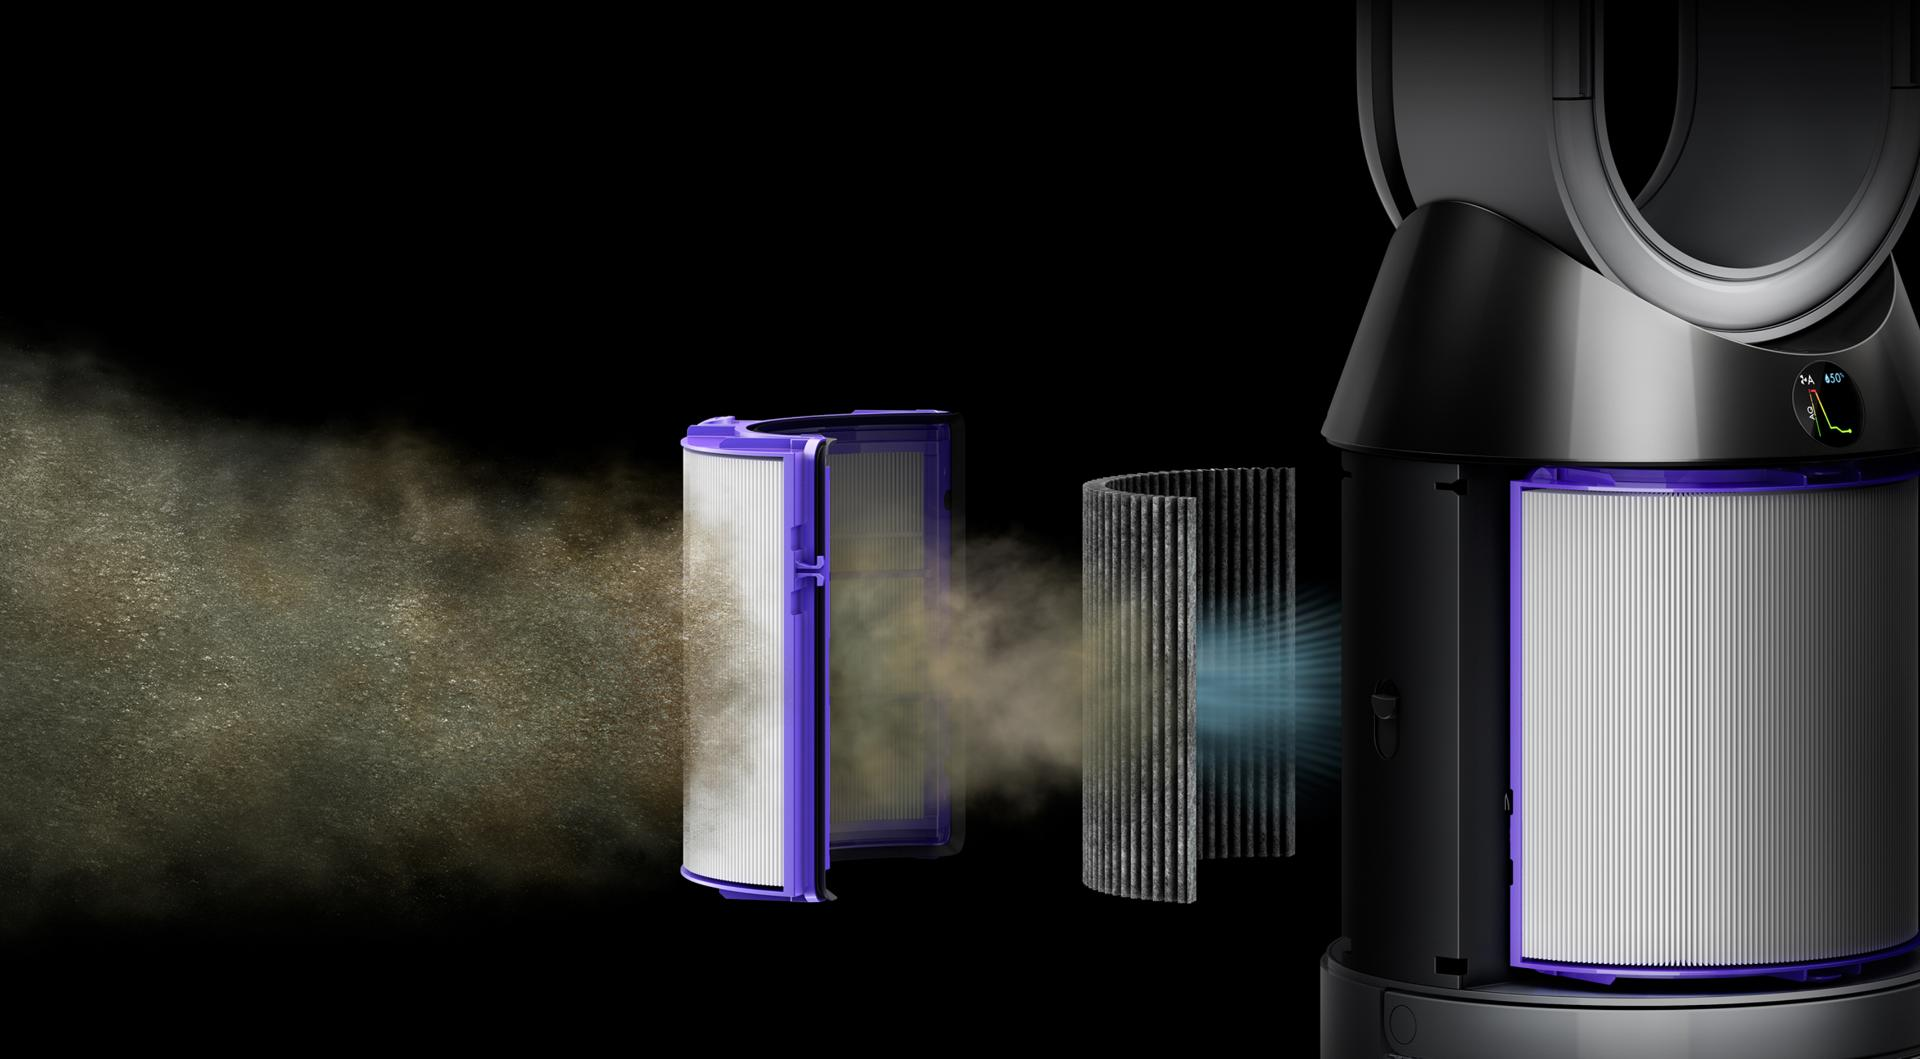 Gases and ultrafine particles being filtered by the Dyson purifier humidifier's filtration system